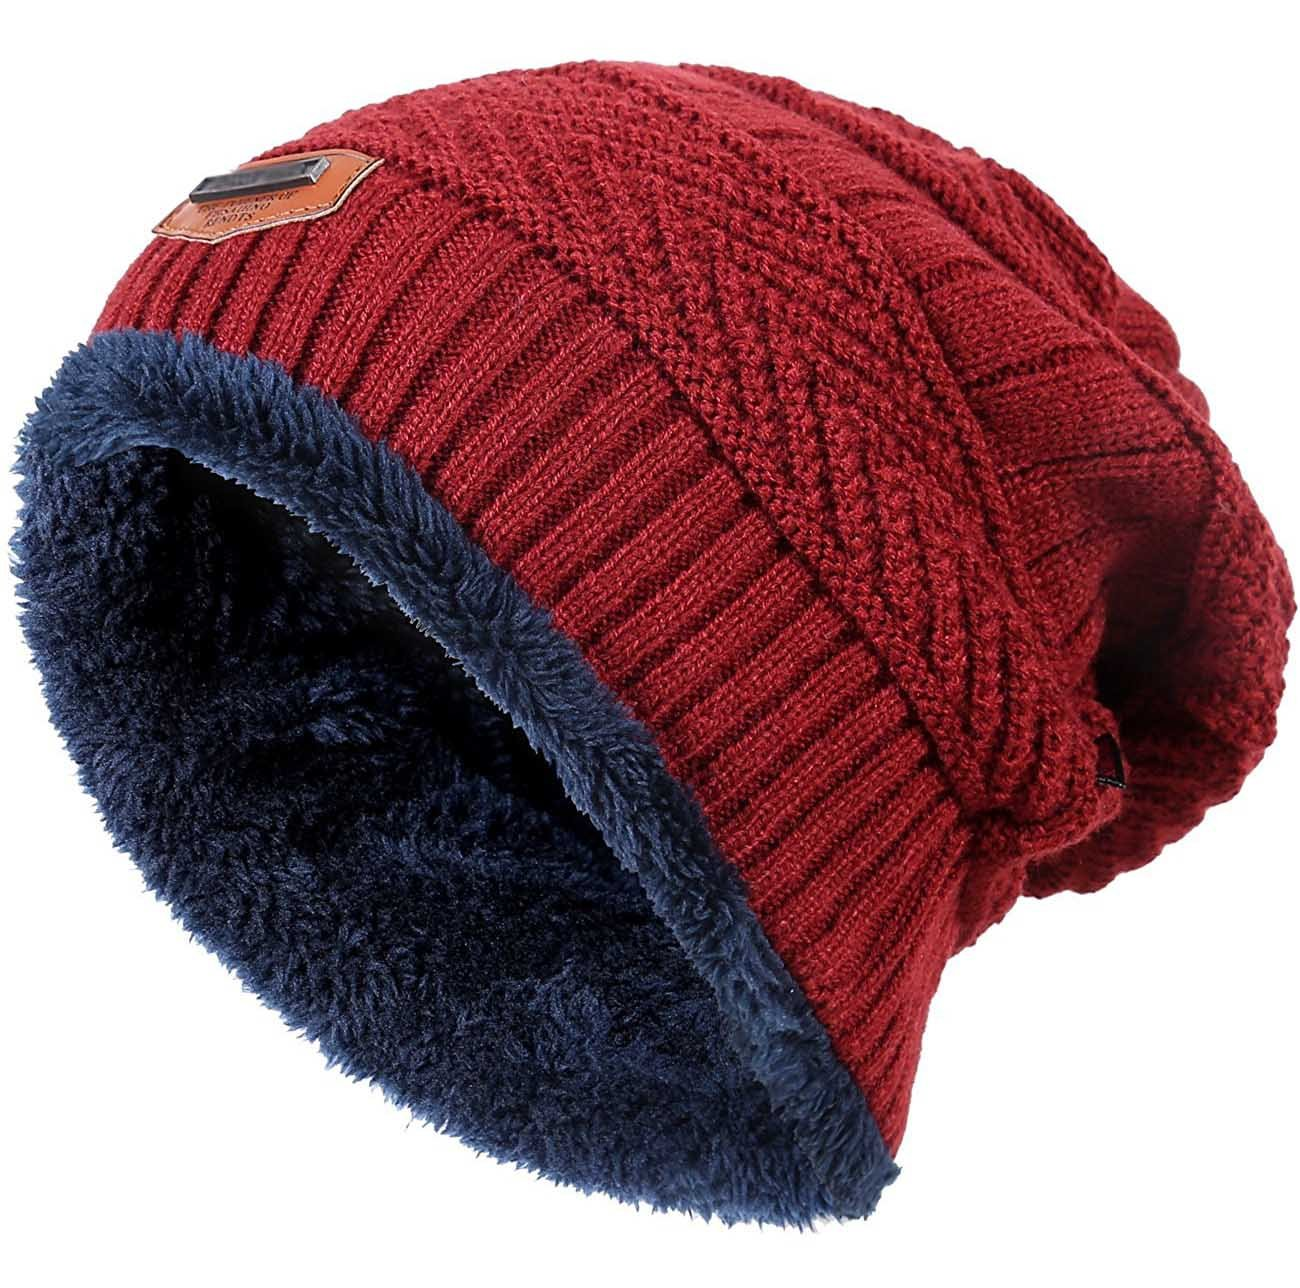 349306a6d Best Rated in Boys' Hats & Caps & Helpful Customer Reviews - Amazon.com